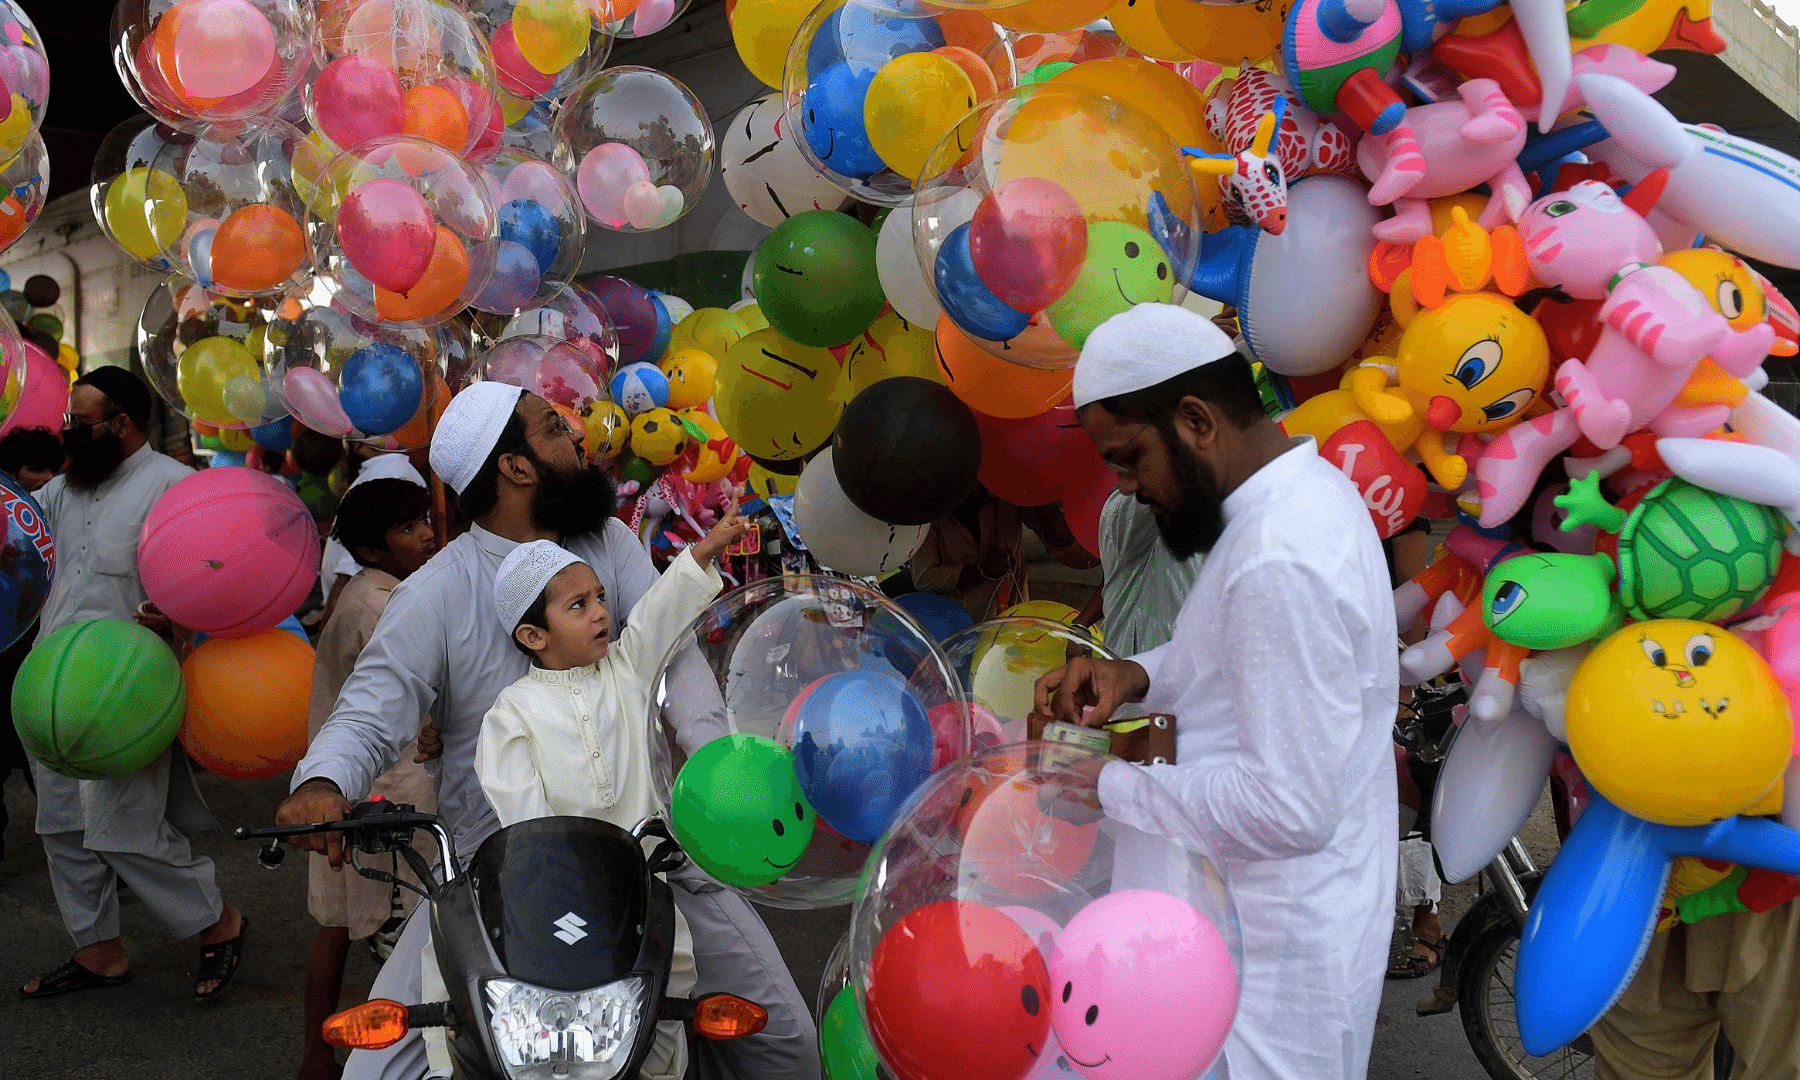 A child accompanying his parents buys balloons on the occasion of Eidul Fitr in Karachi. — AFP